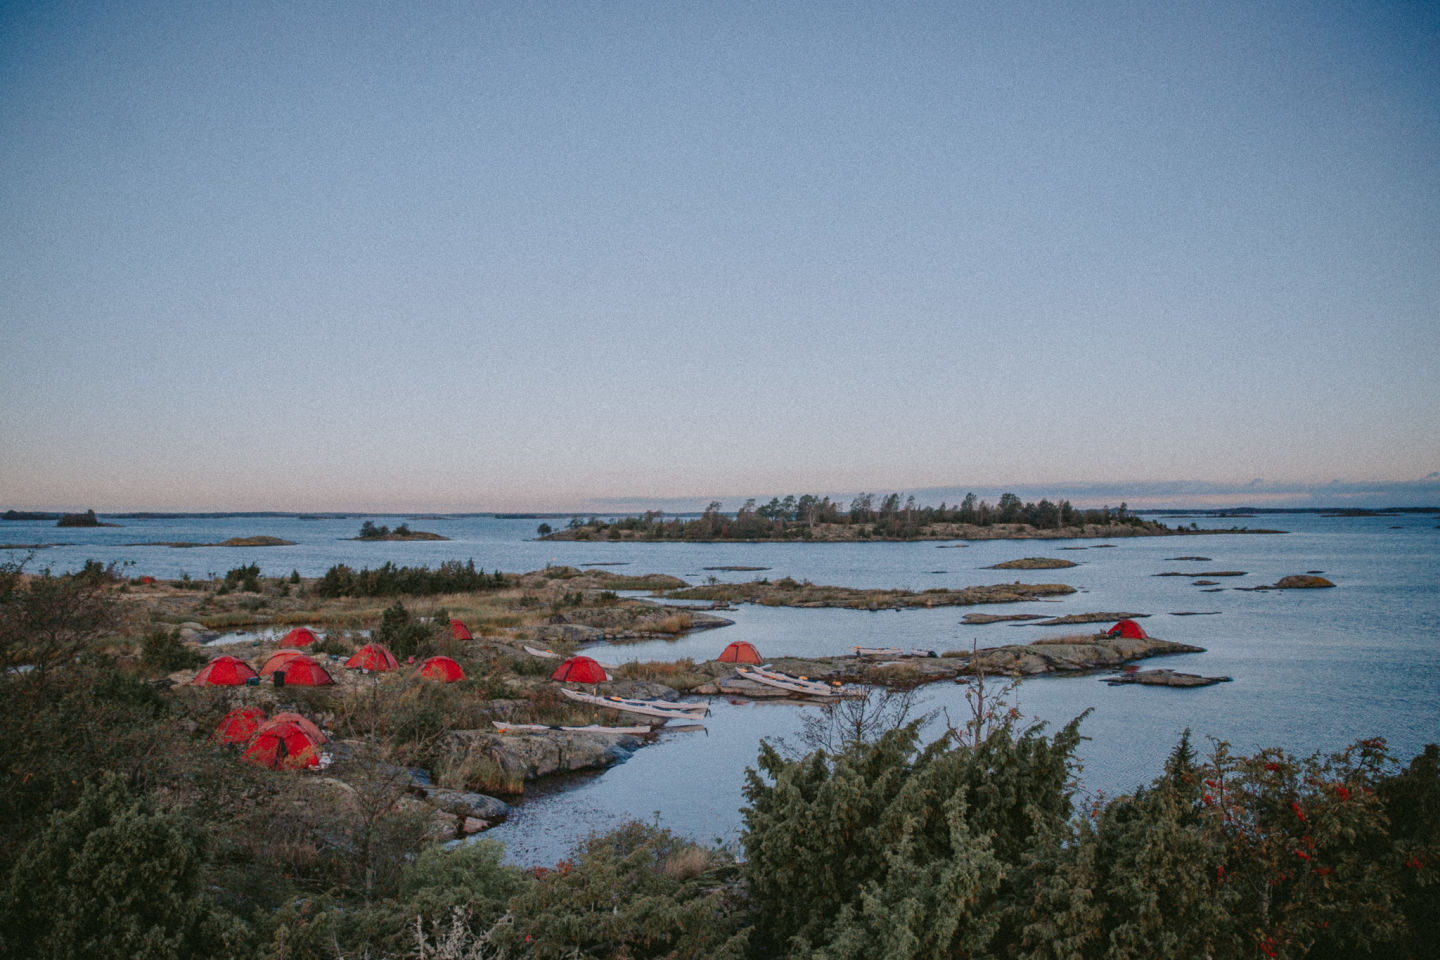 Wild camping in the Swedish Archipelago